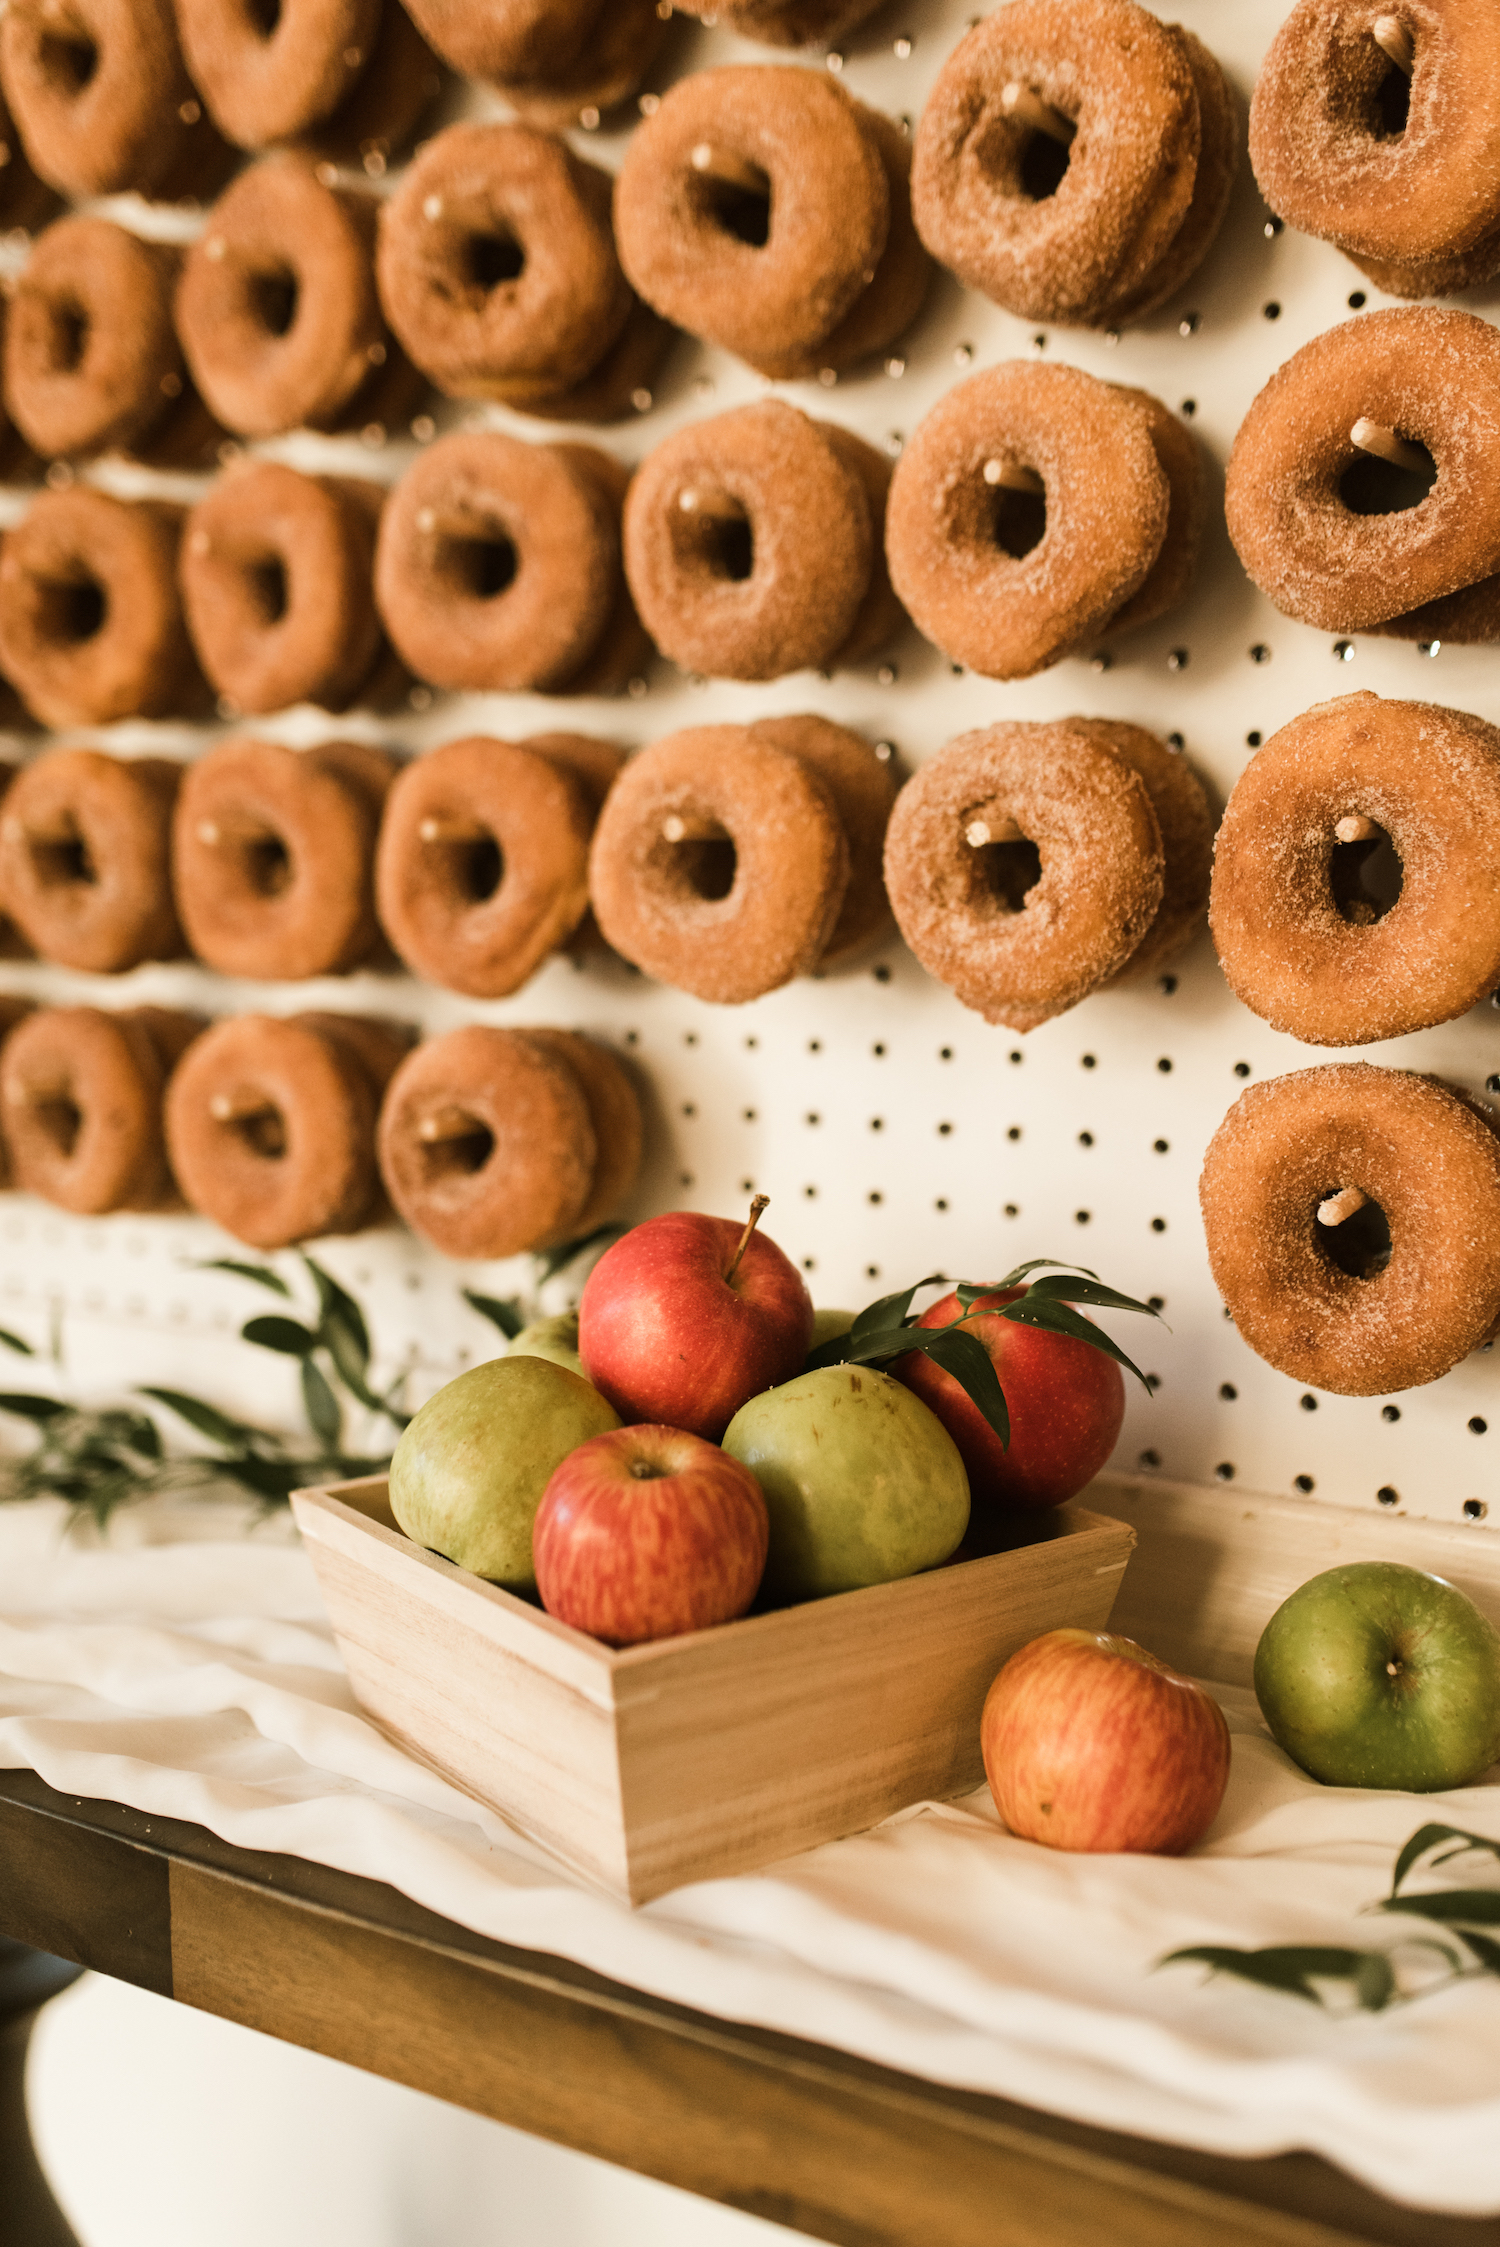 Wedding Donut Wall Dessert Display: Upscale Marble Graystone Quarry Wedding featured on Nashville Bride Guide by Shelby Rae Photographs